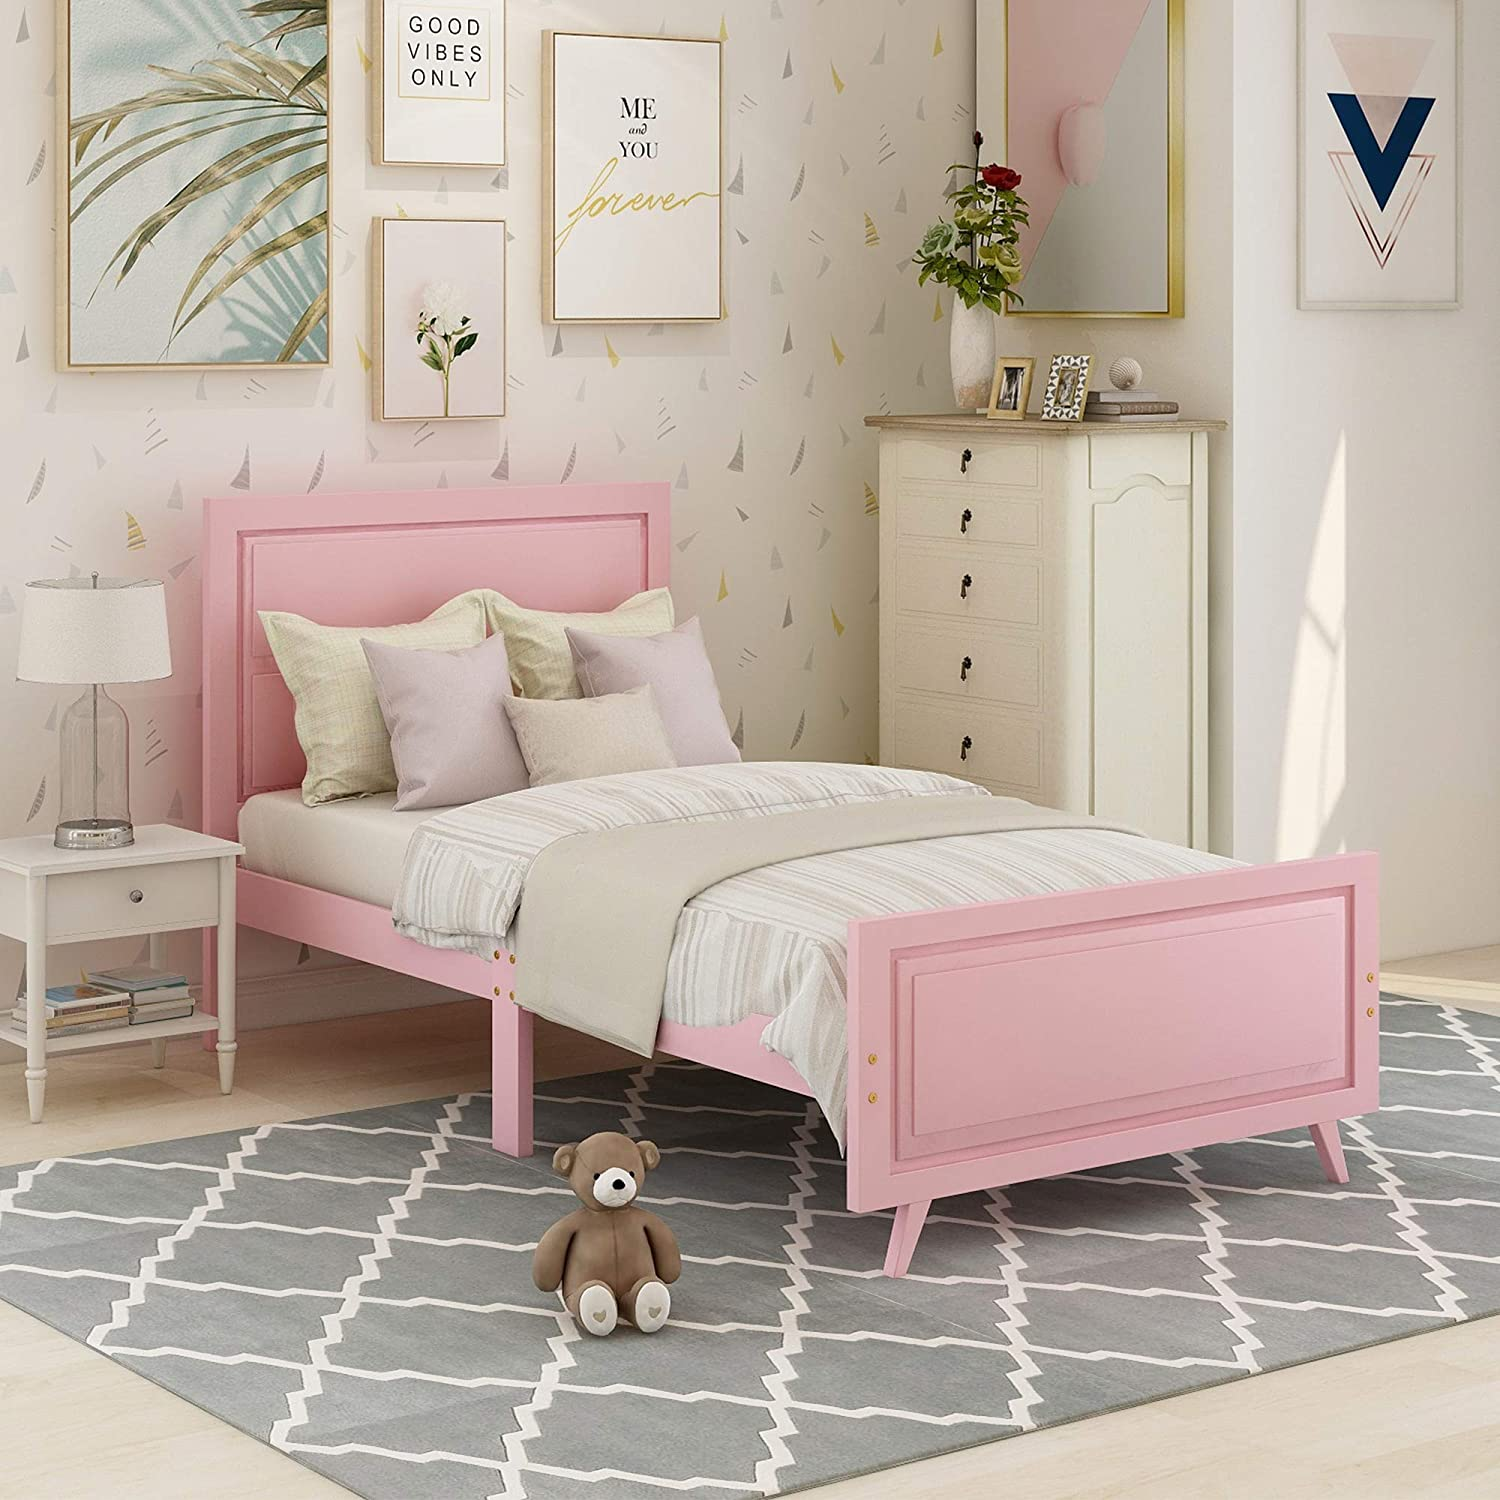 Amazon Com Wood Twin Bed For Girls Size Frame With Headboard And Footboard Kids Toddler Kitchen Dining